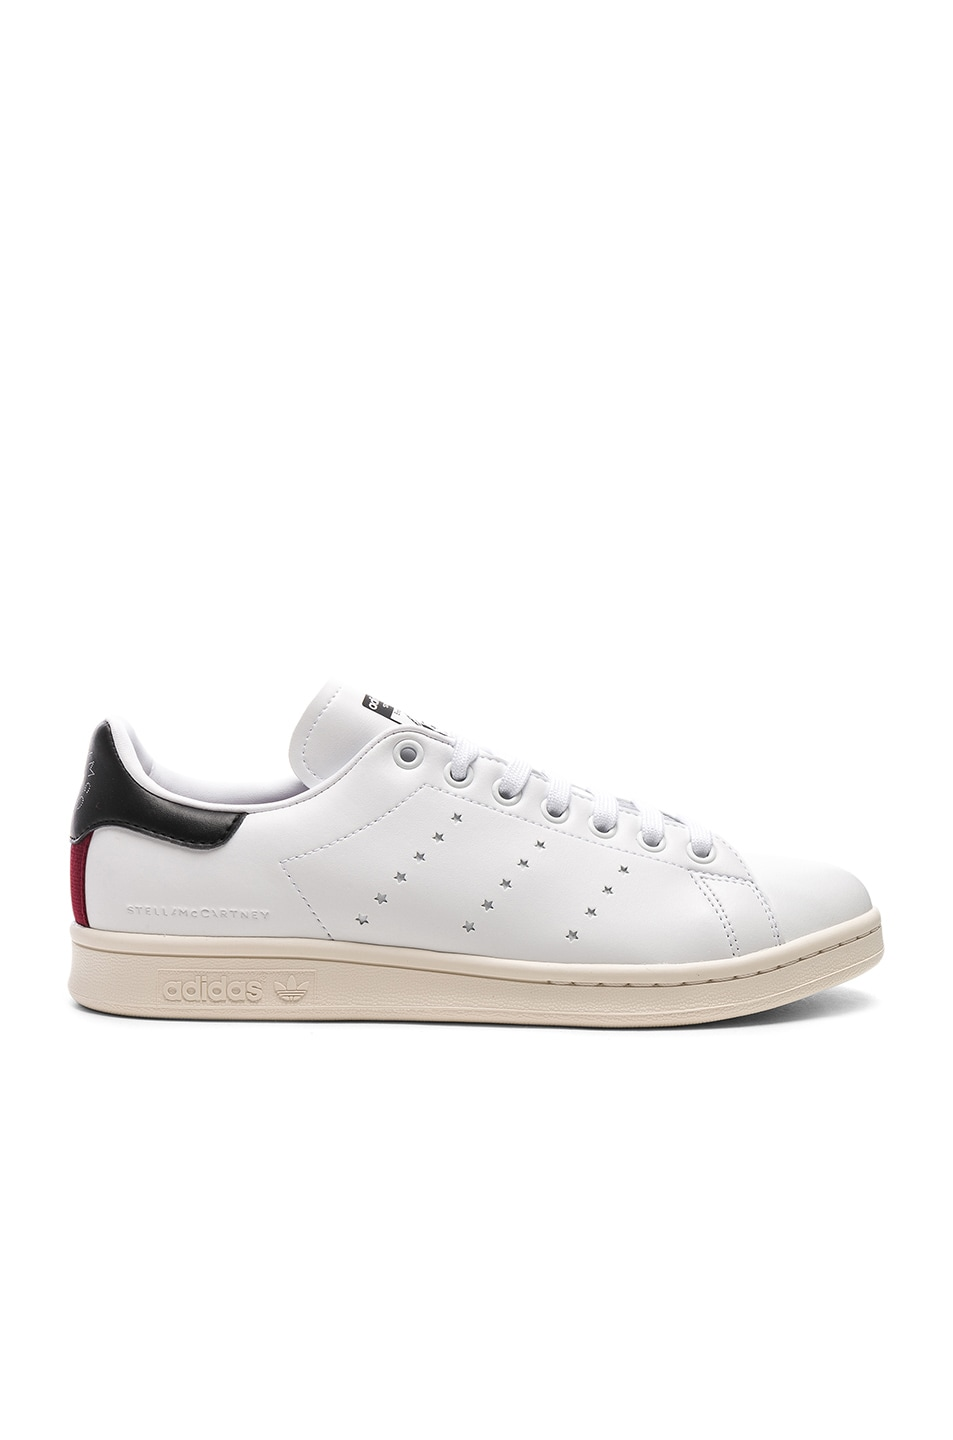 Image 1 of Stella McCartney Low Top Sneakers in White & Black